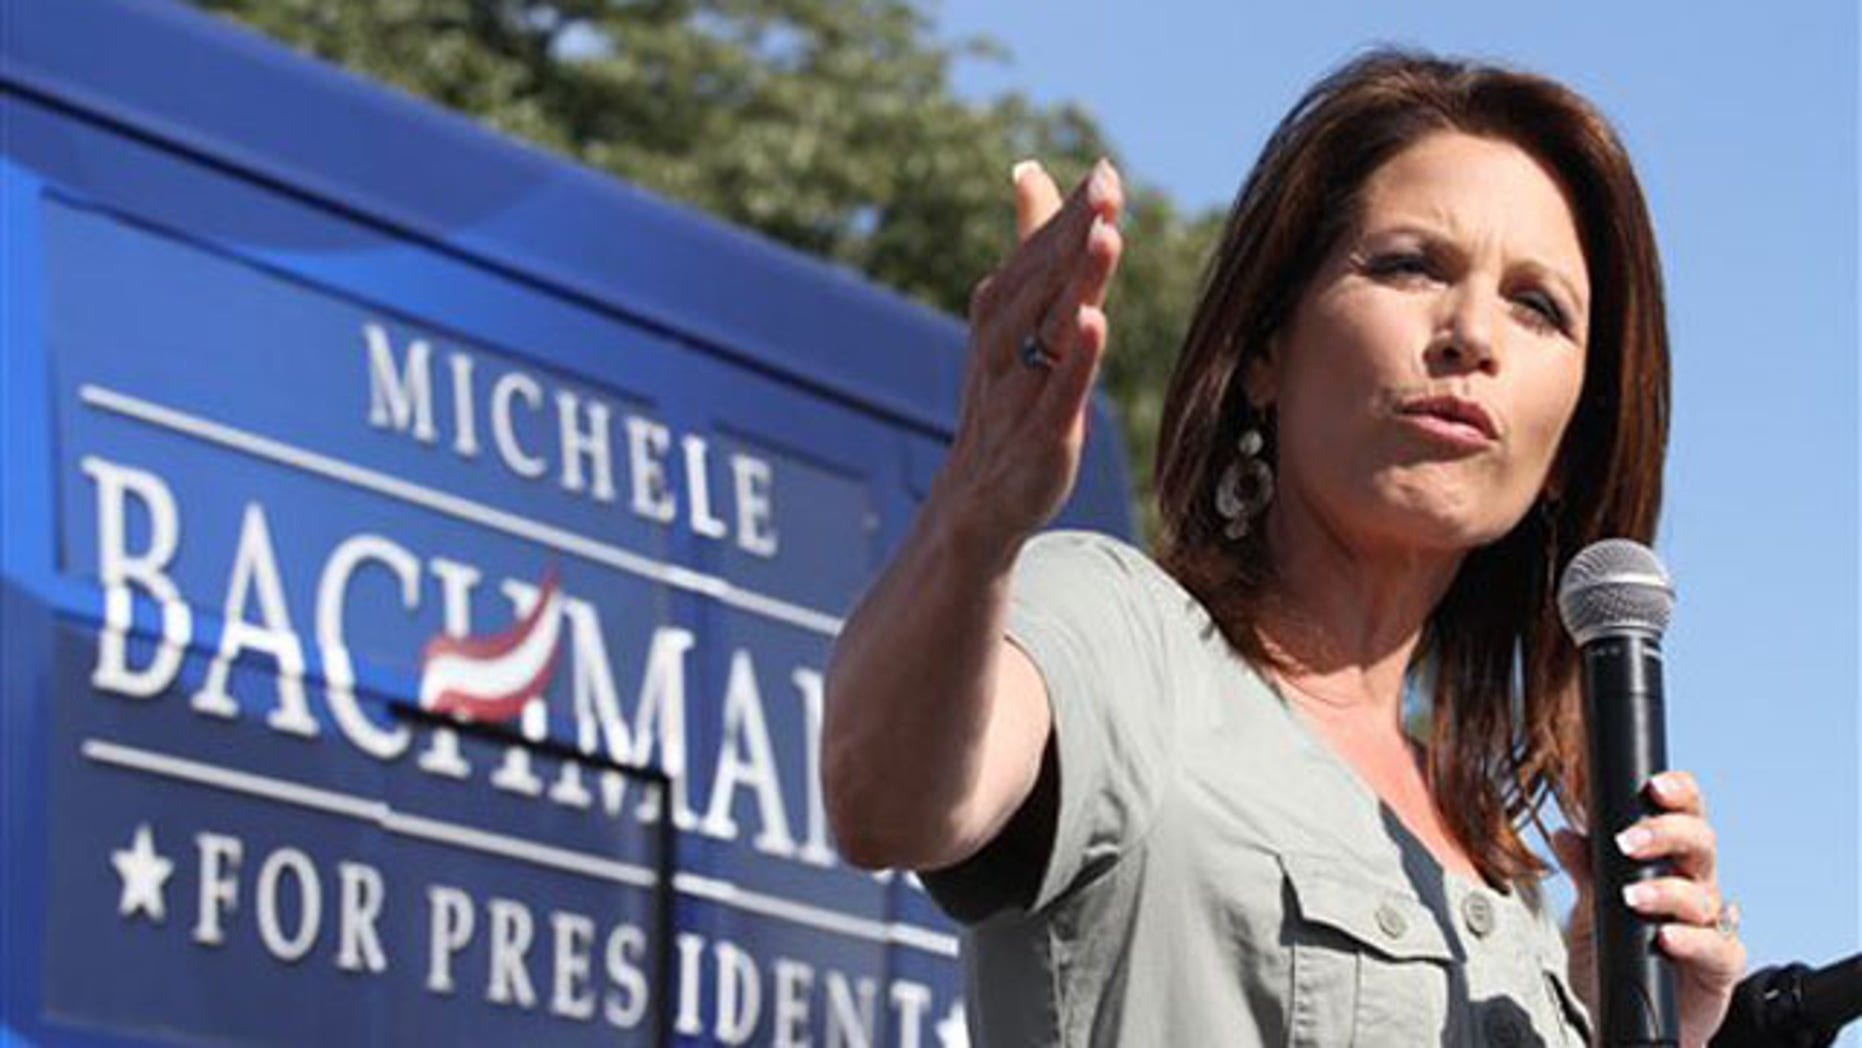 Presidential candidate Rep. Michele Bachmann speaks at a Tea Party rally outside the Iowa State Capitol in Des Moines July 2.